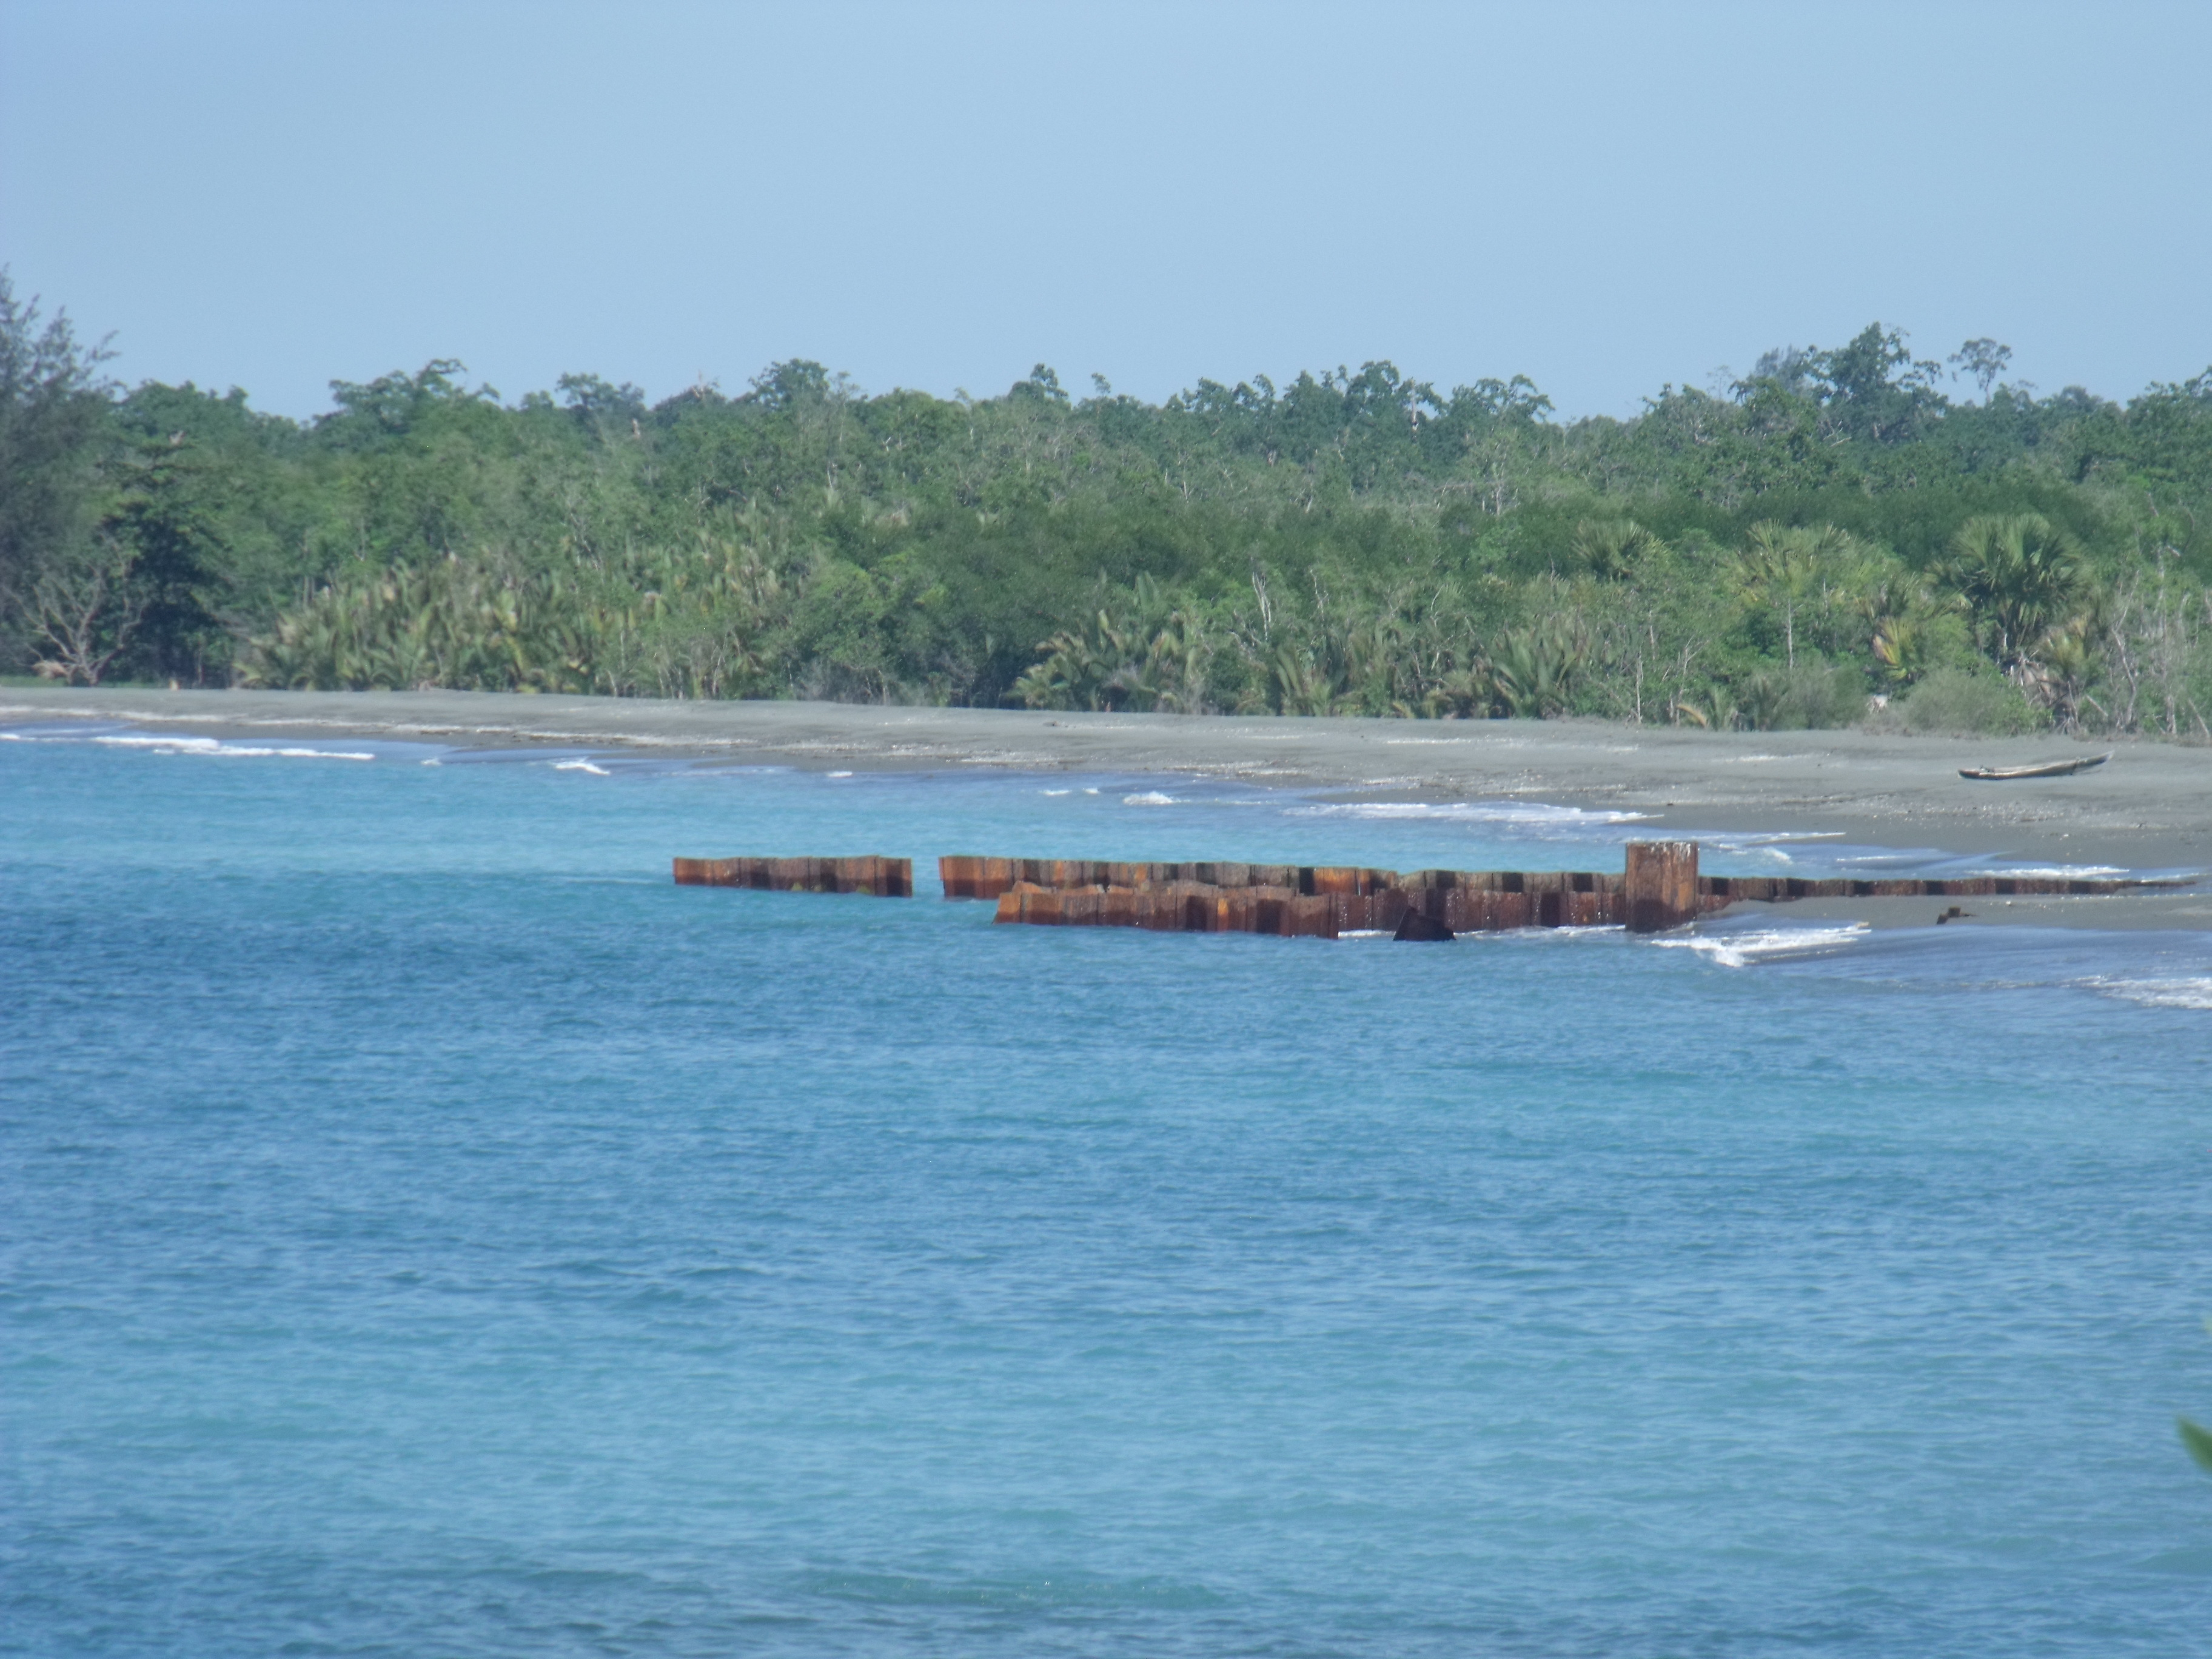 The remains of HMAS Voyager at Betano. Photo: Tim Holt